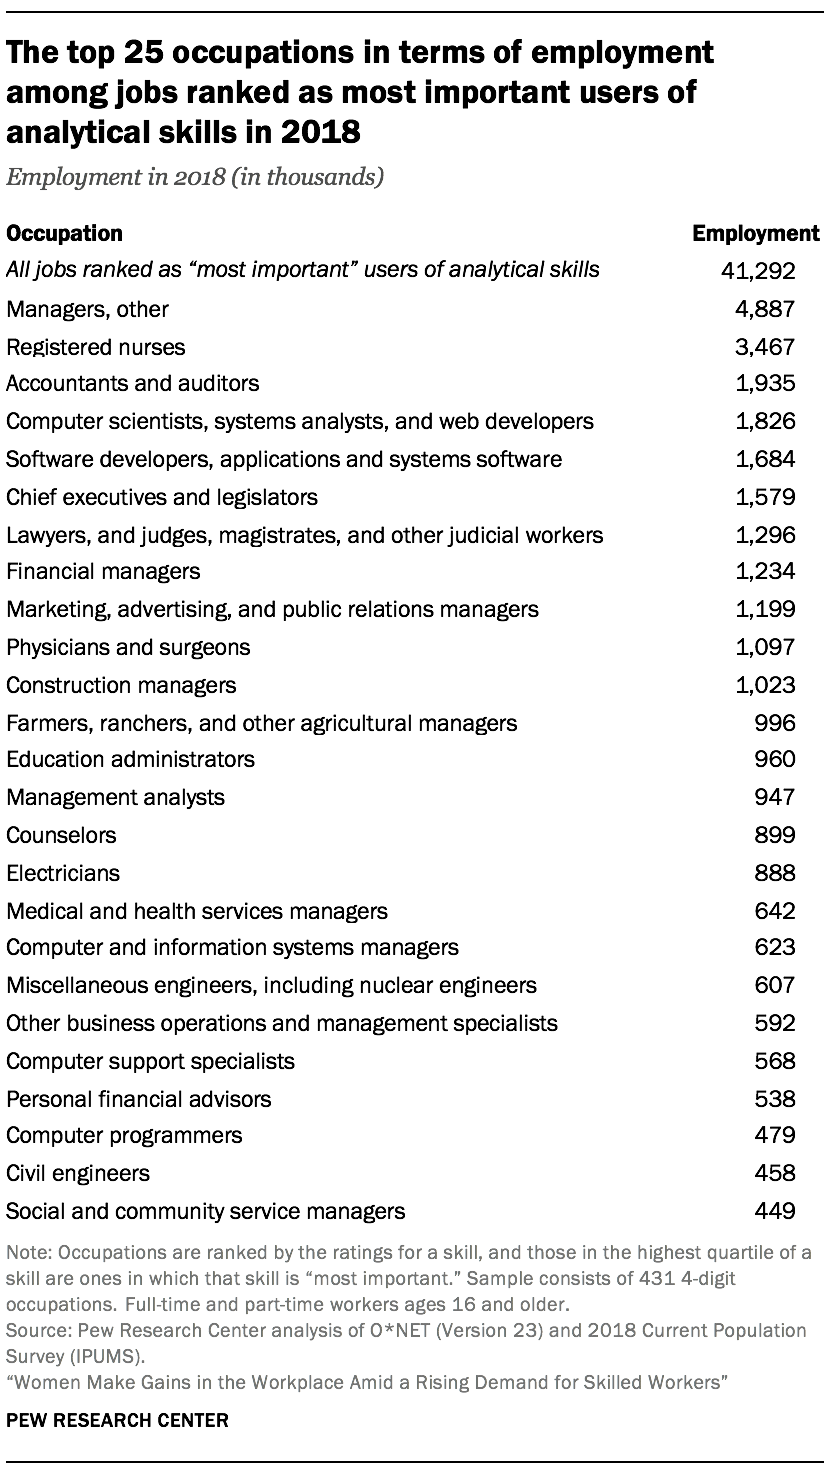 The top 25 occupations in terms of employment among jobs ranked as most important users of analytical skills in 2018